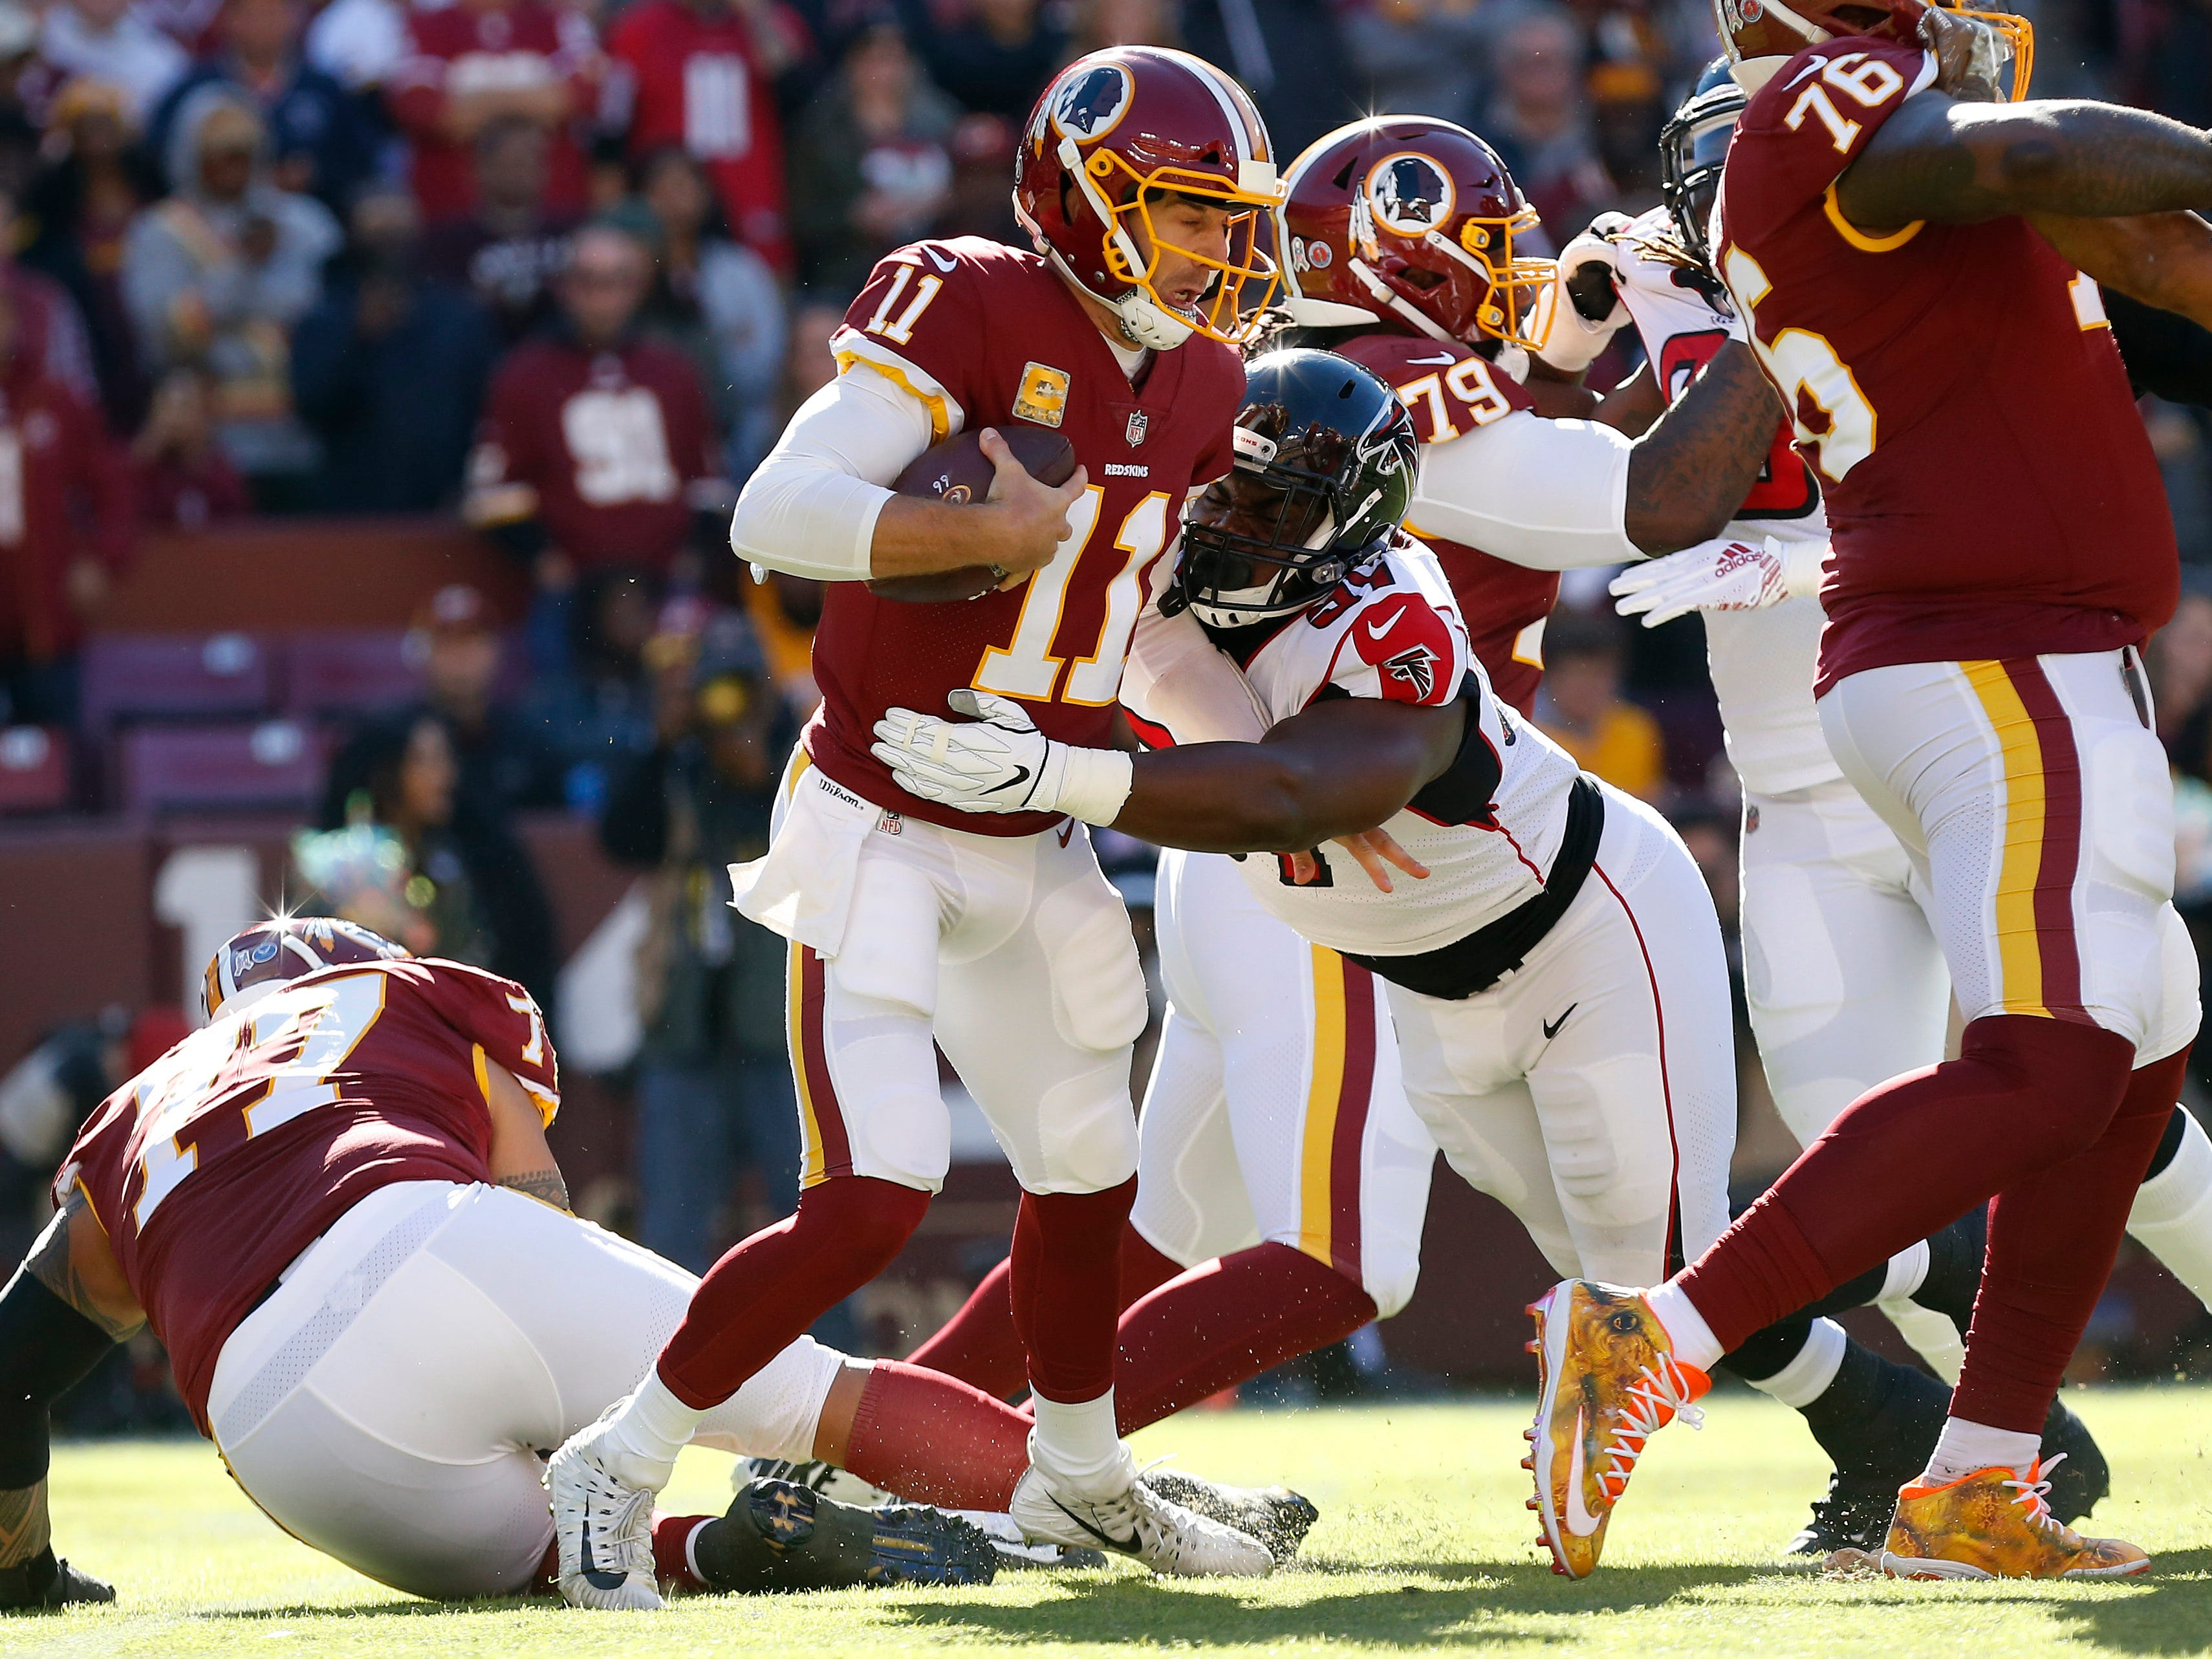 Atlanta Falcons defensive tackle Grady Jarrett (97) sacks Washington Redskins quarterback Alex Smith (11) in the first quarter at FedExField.